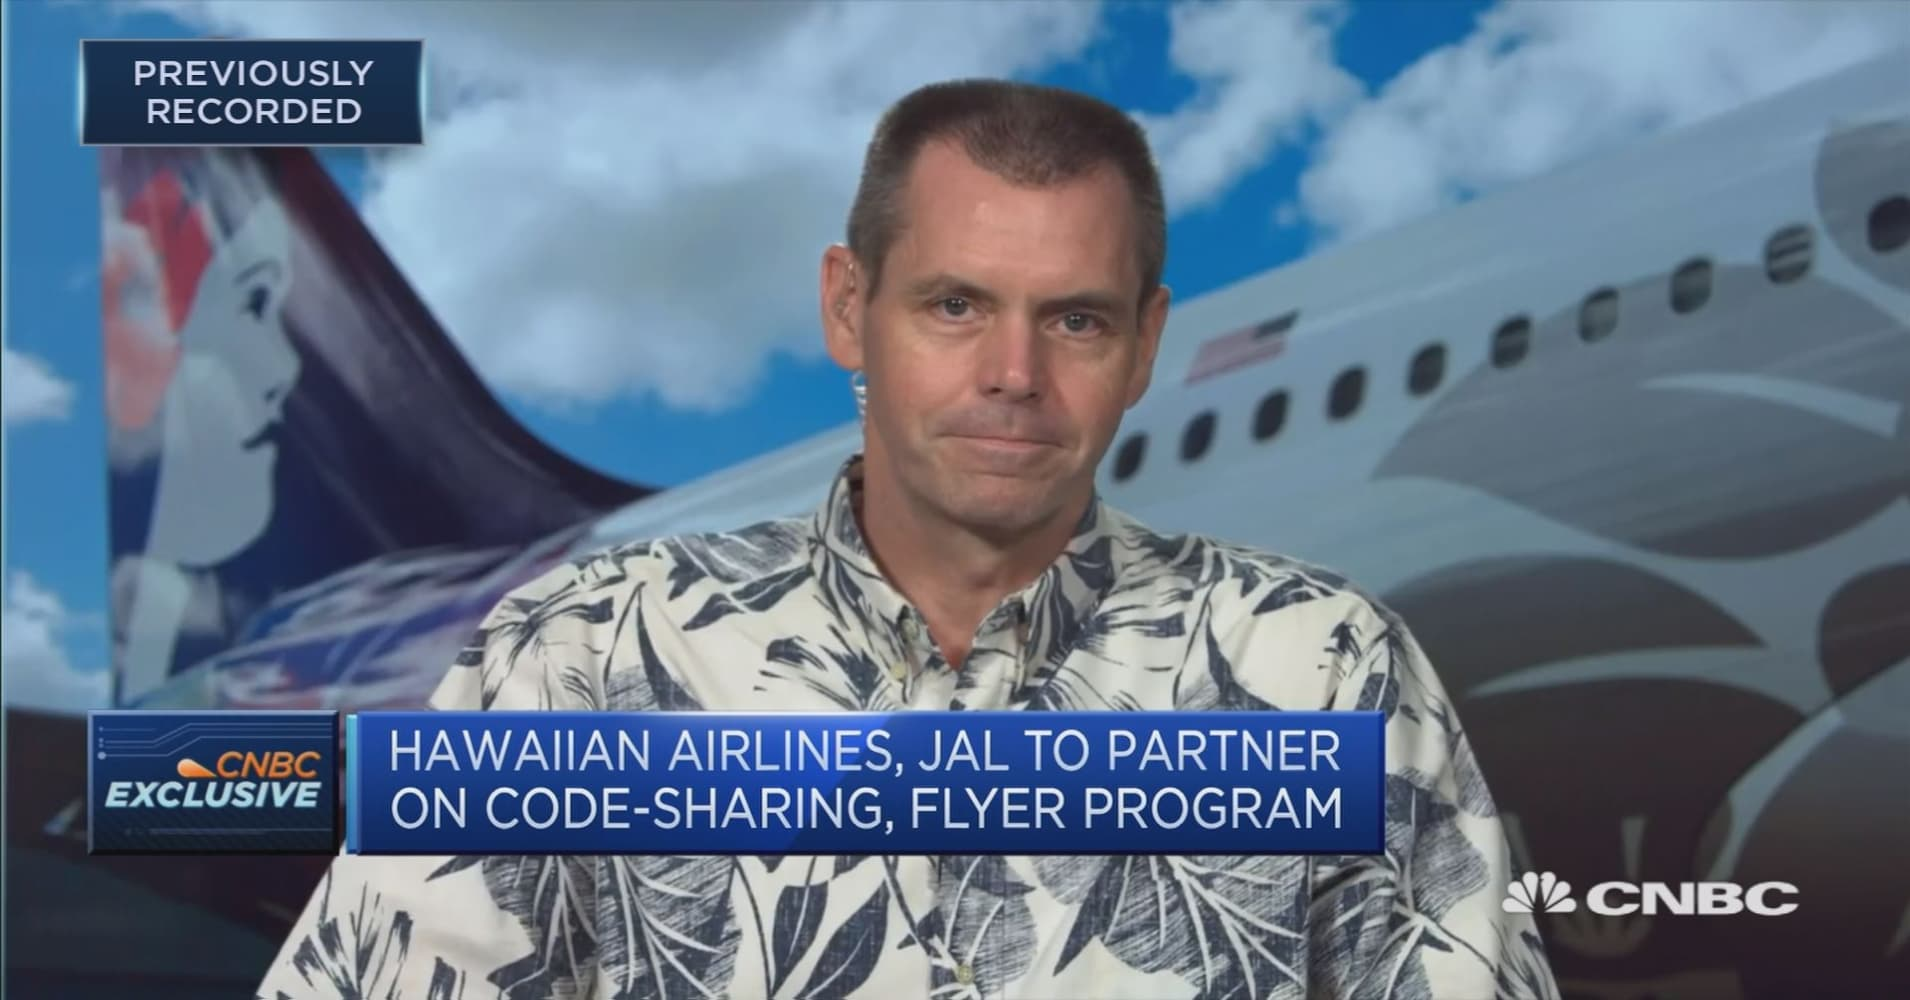 Hawaiian Airlines CEO on Boeing 787-9 acquisitions